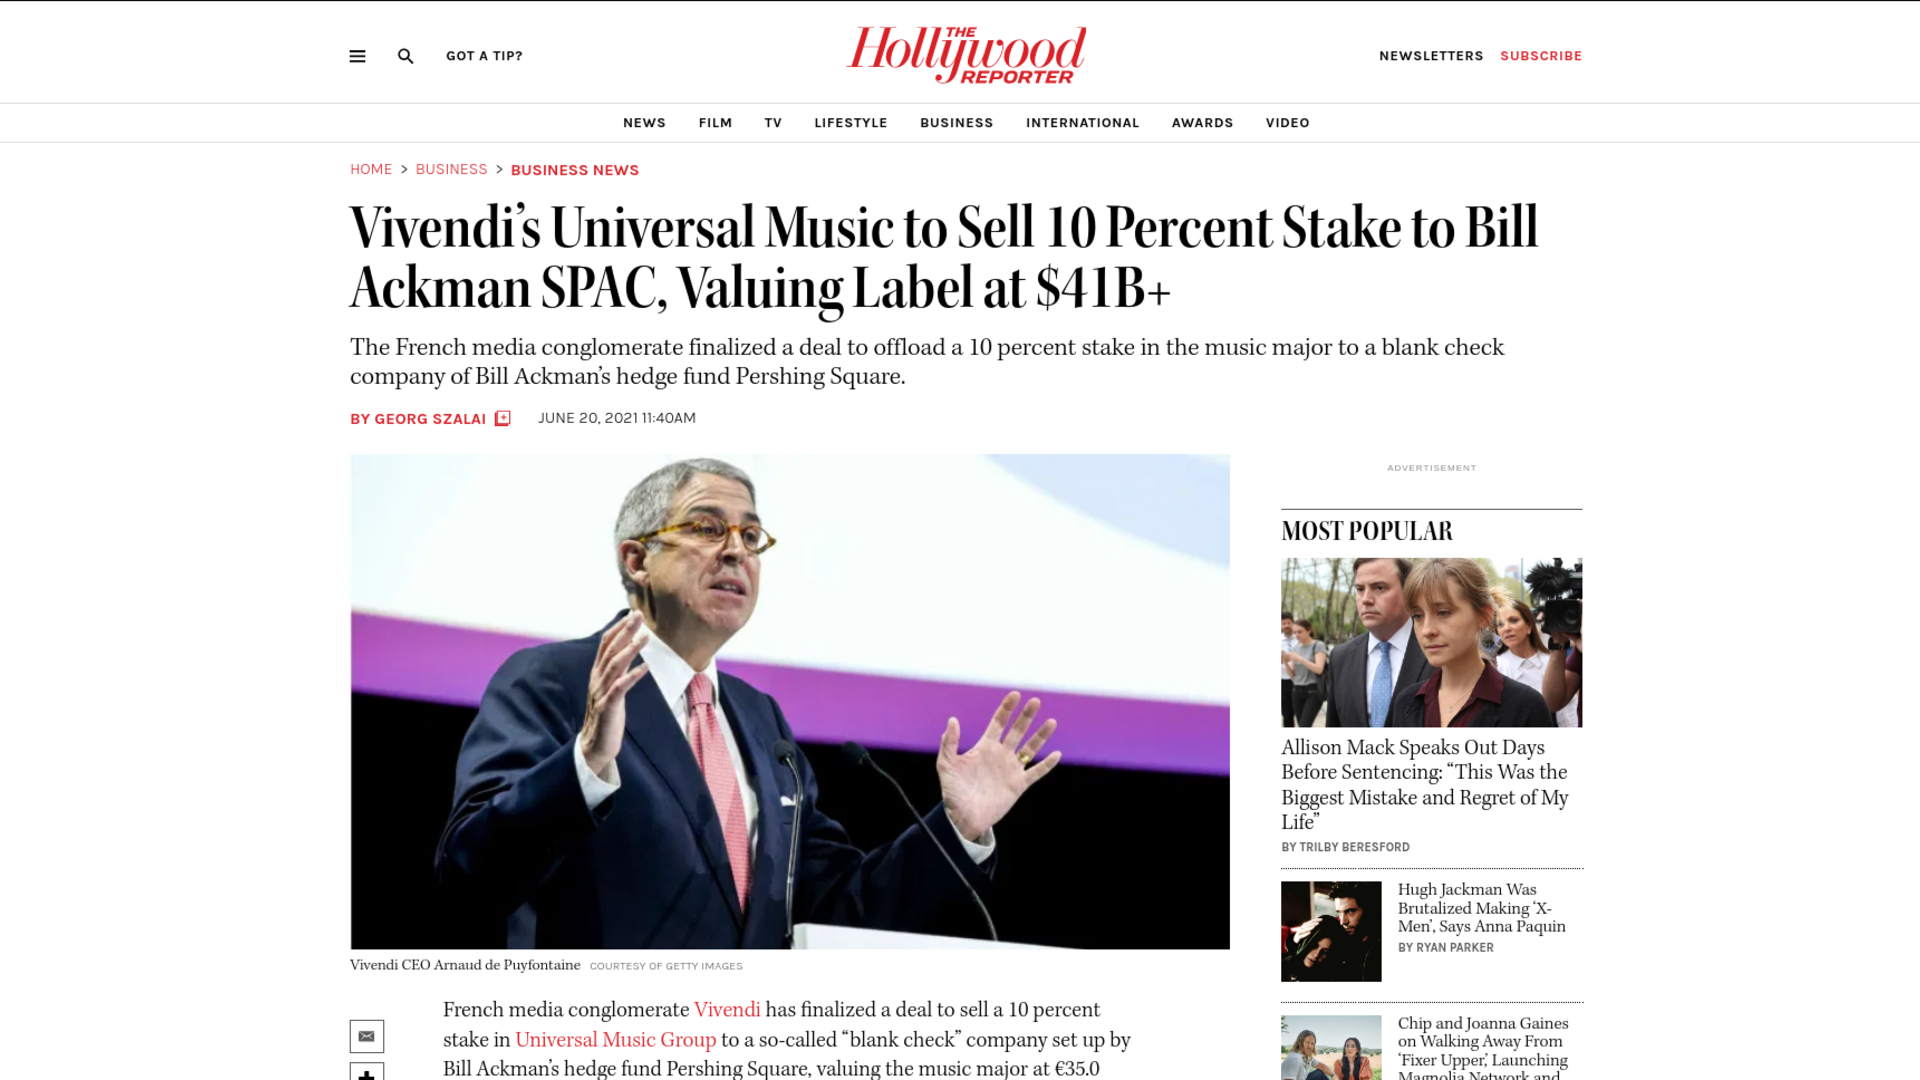 Fairness Rocks News Vivendi's Universal Music to Sell 10 Percent Stake to Bill Ackman SPAC, Valuing Label at $41B+